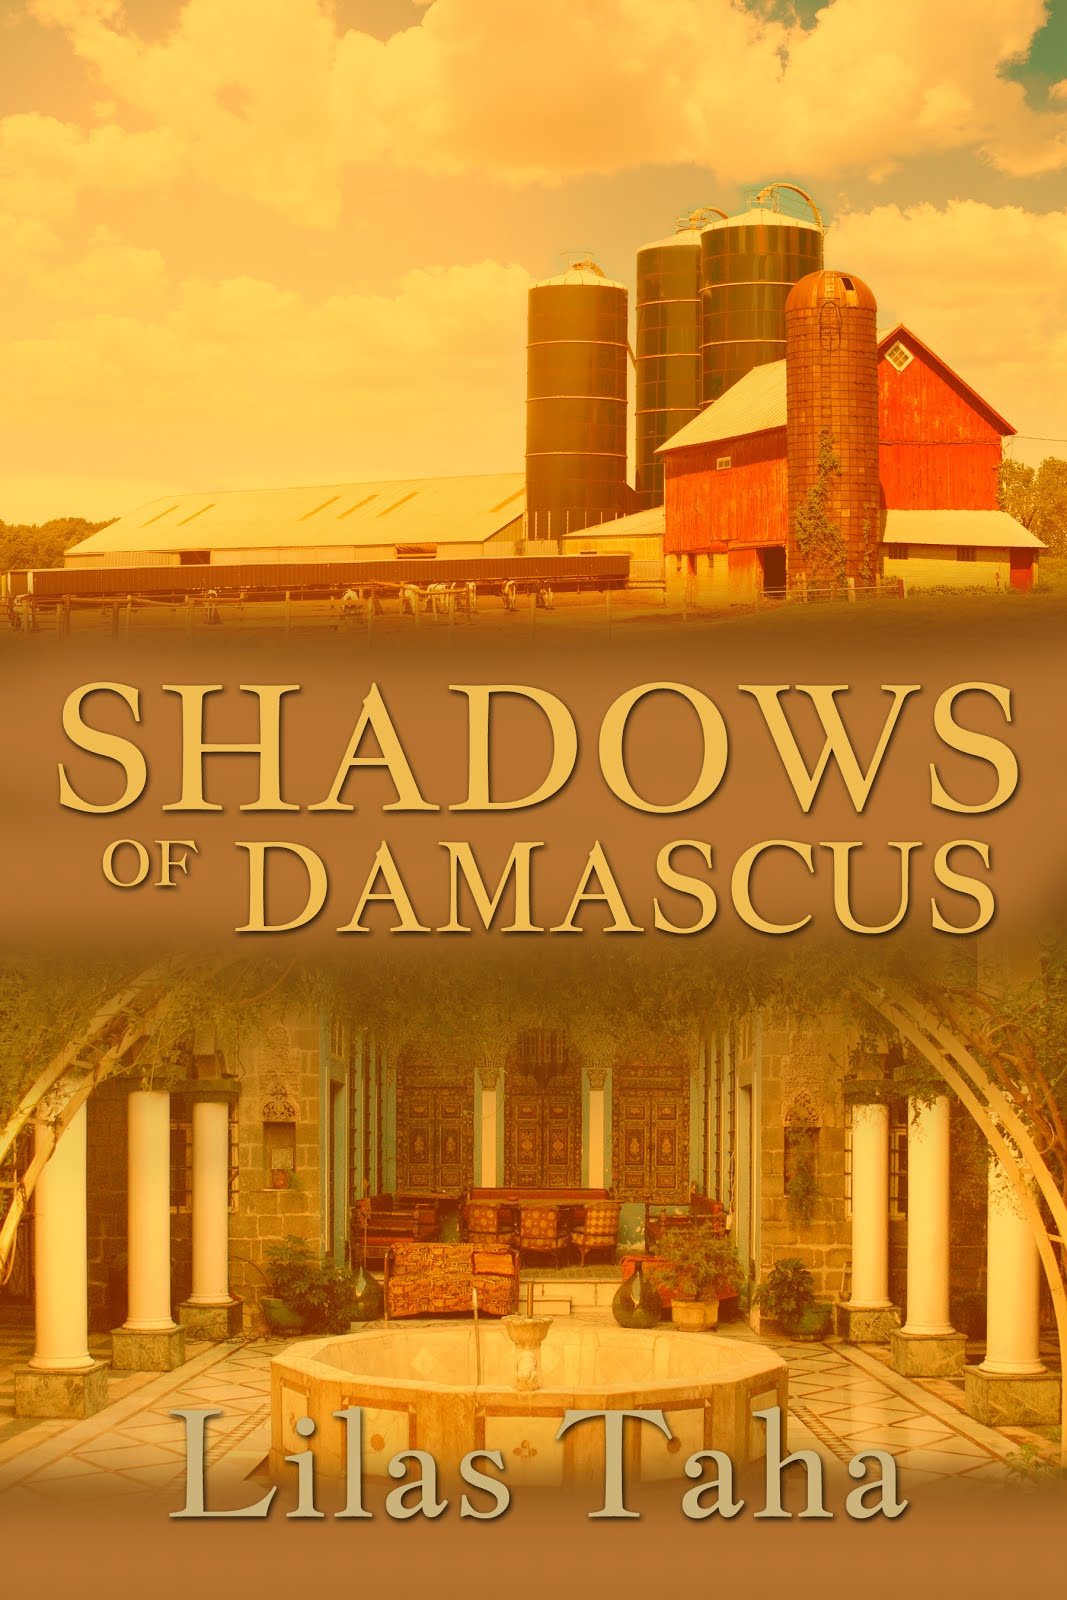 Click on book image to buy Shadows of Damascus from Amazon